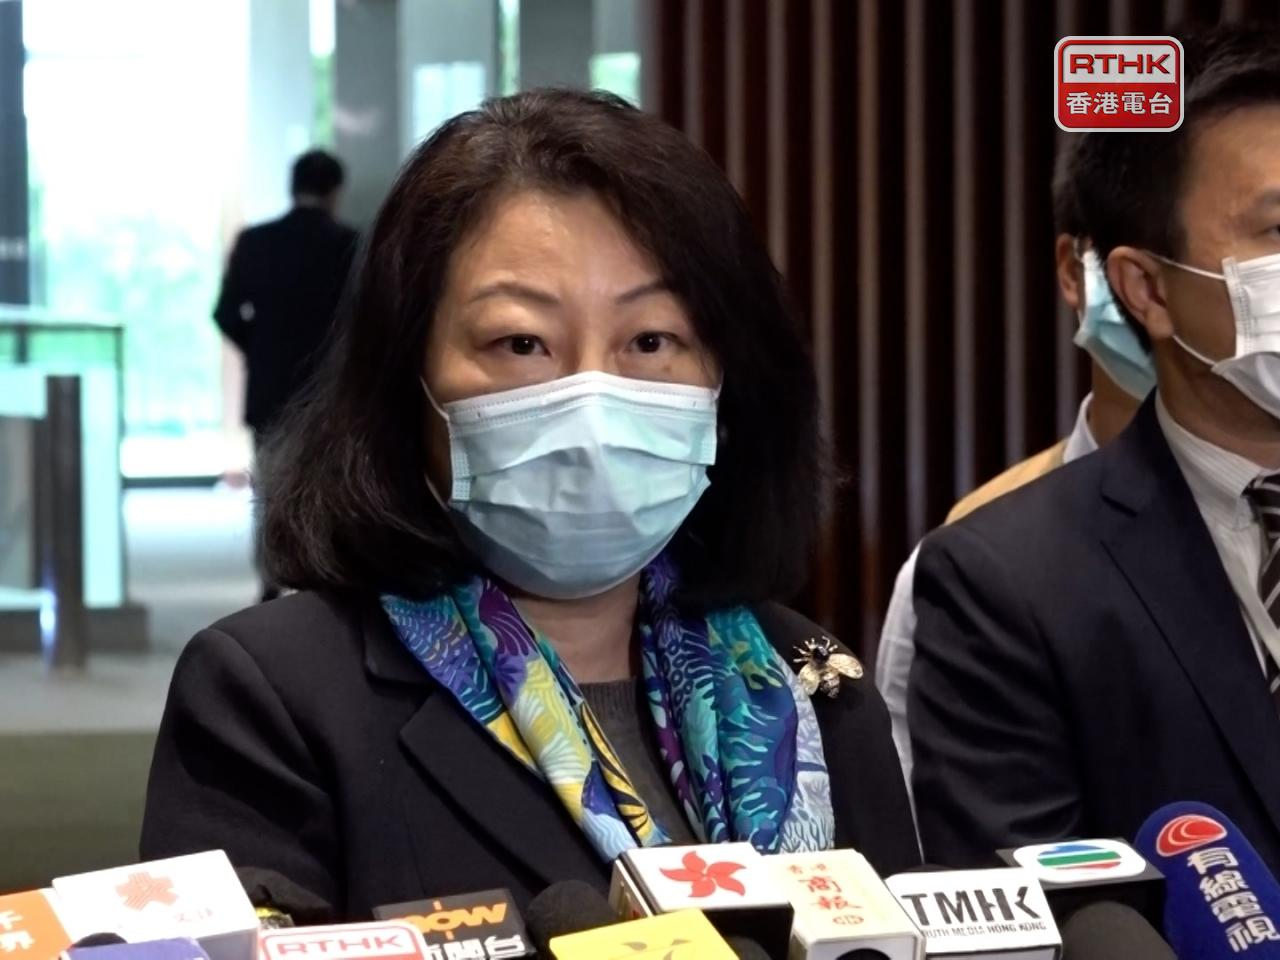 Teresa Cheng said the anti-sanctions law would only be triggered when foreign governments impose unreasonable sanctions on Hong Kong and China. File photo: RTHK